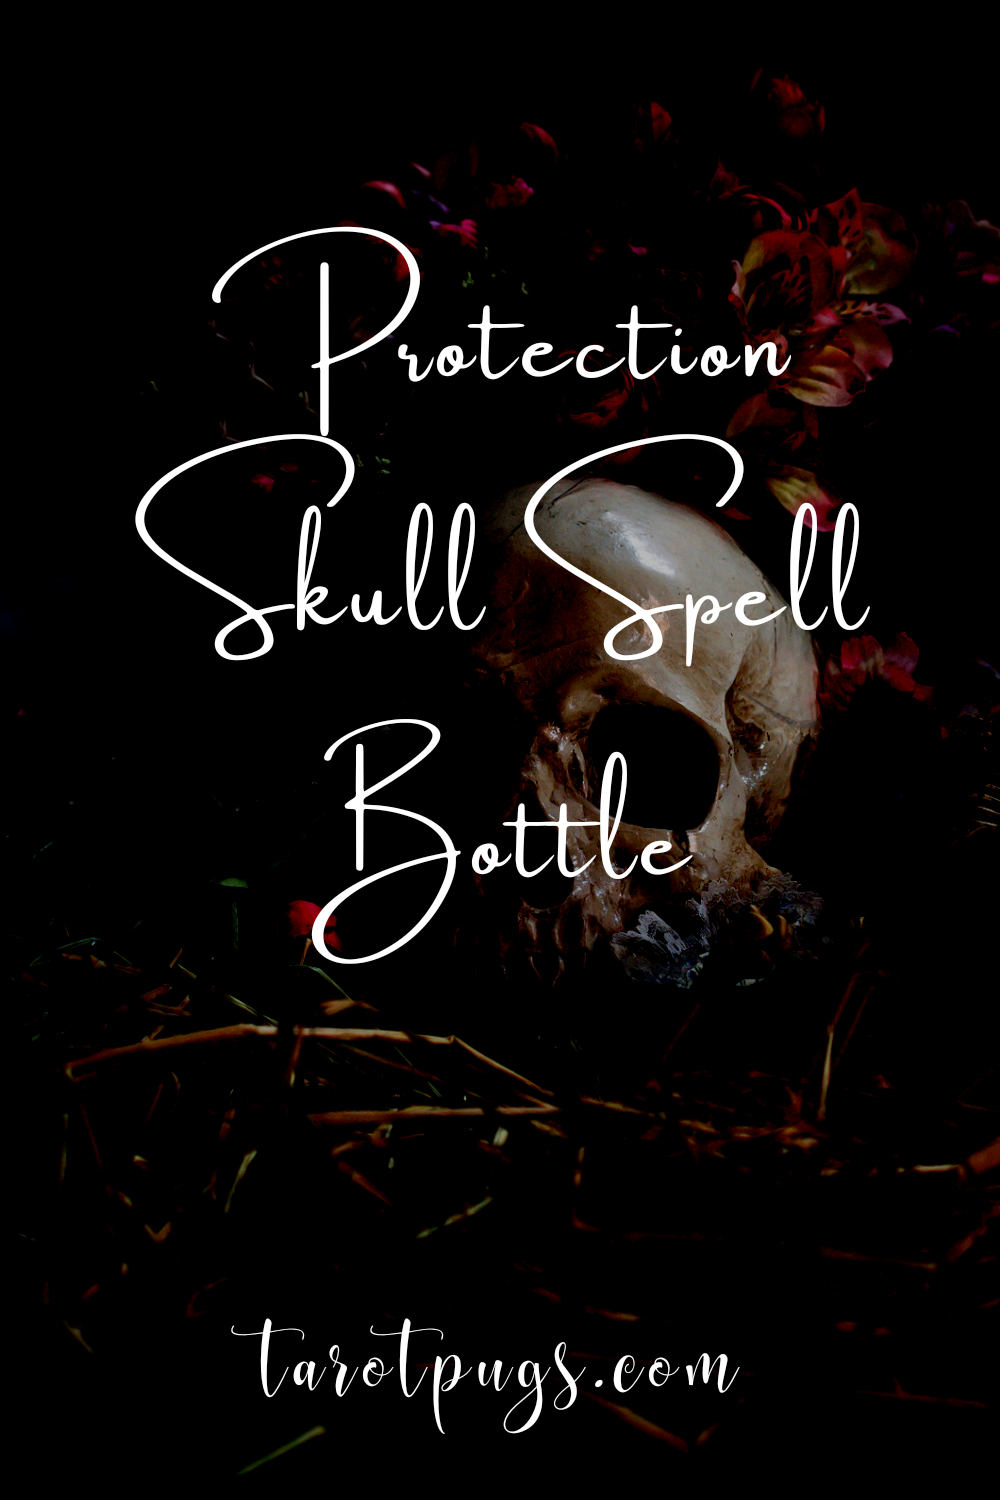 Work protection magick with this protection skull spell bottle #witchcraft #magick #spells